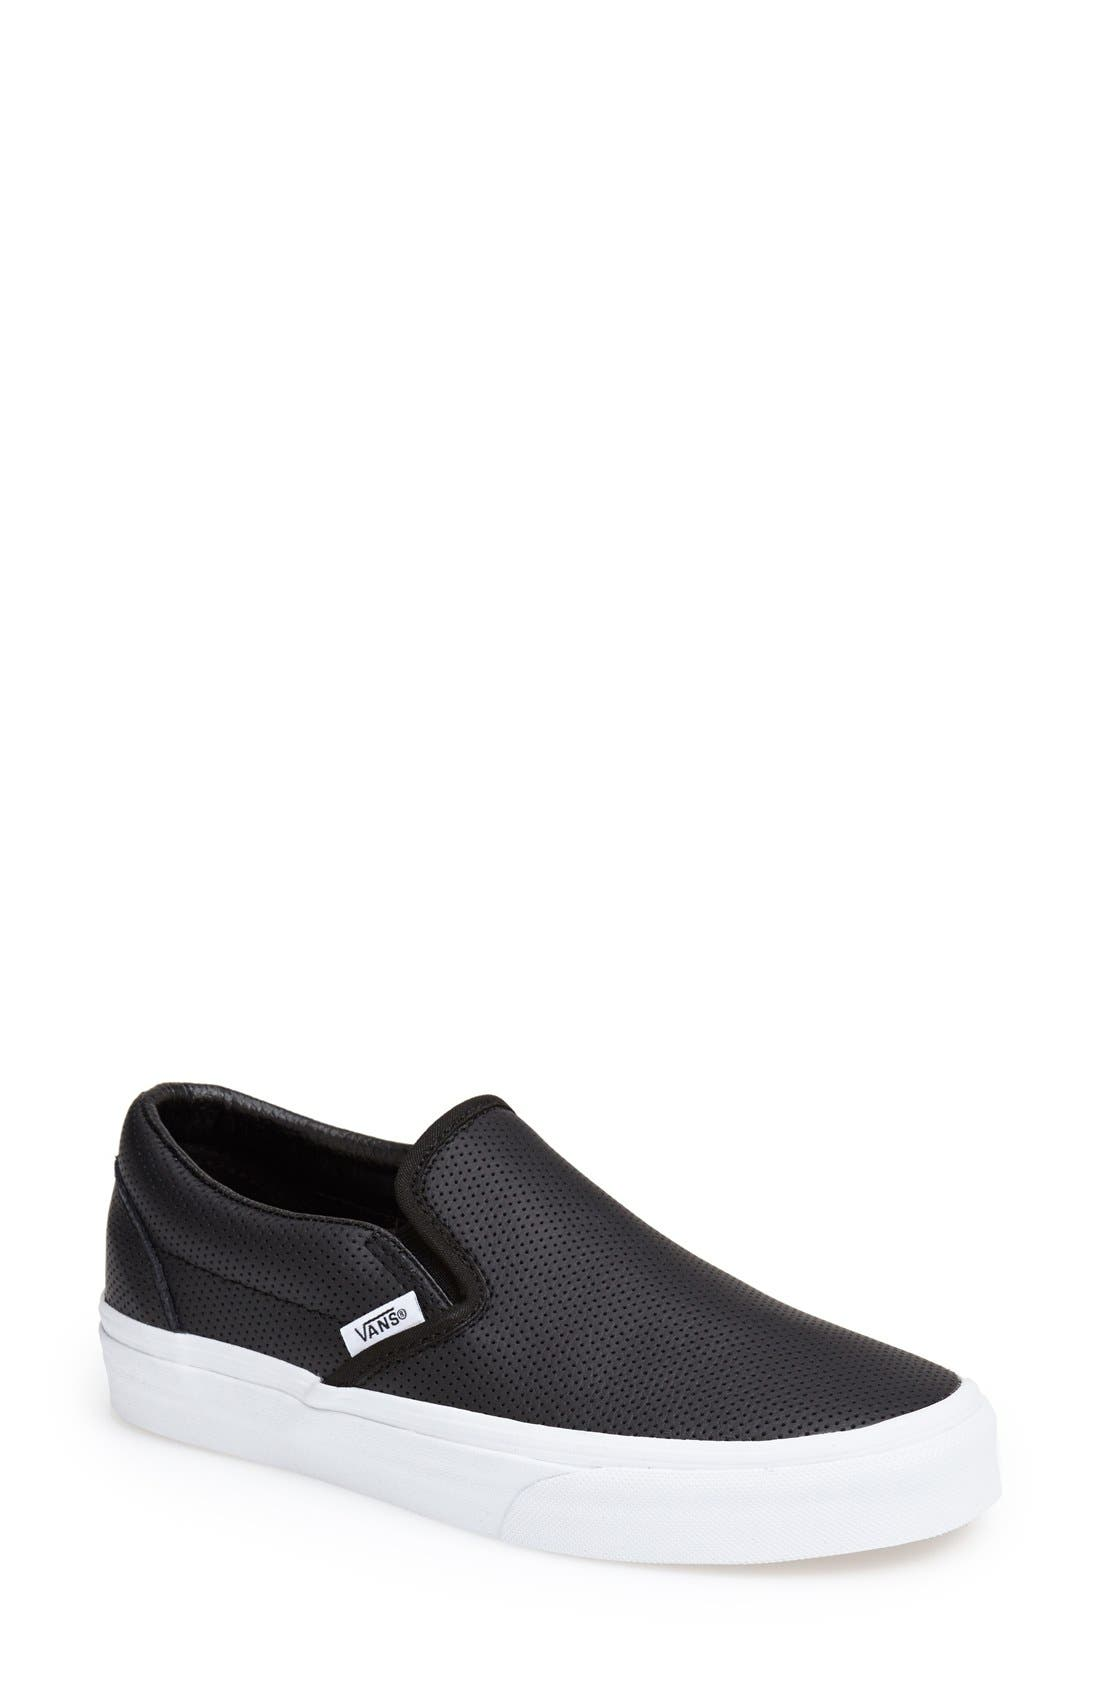 black vans shoes women